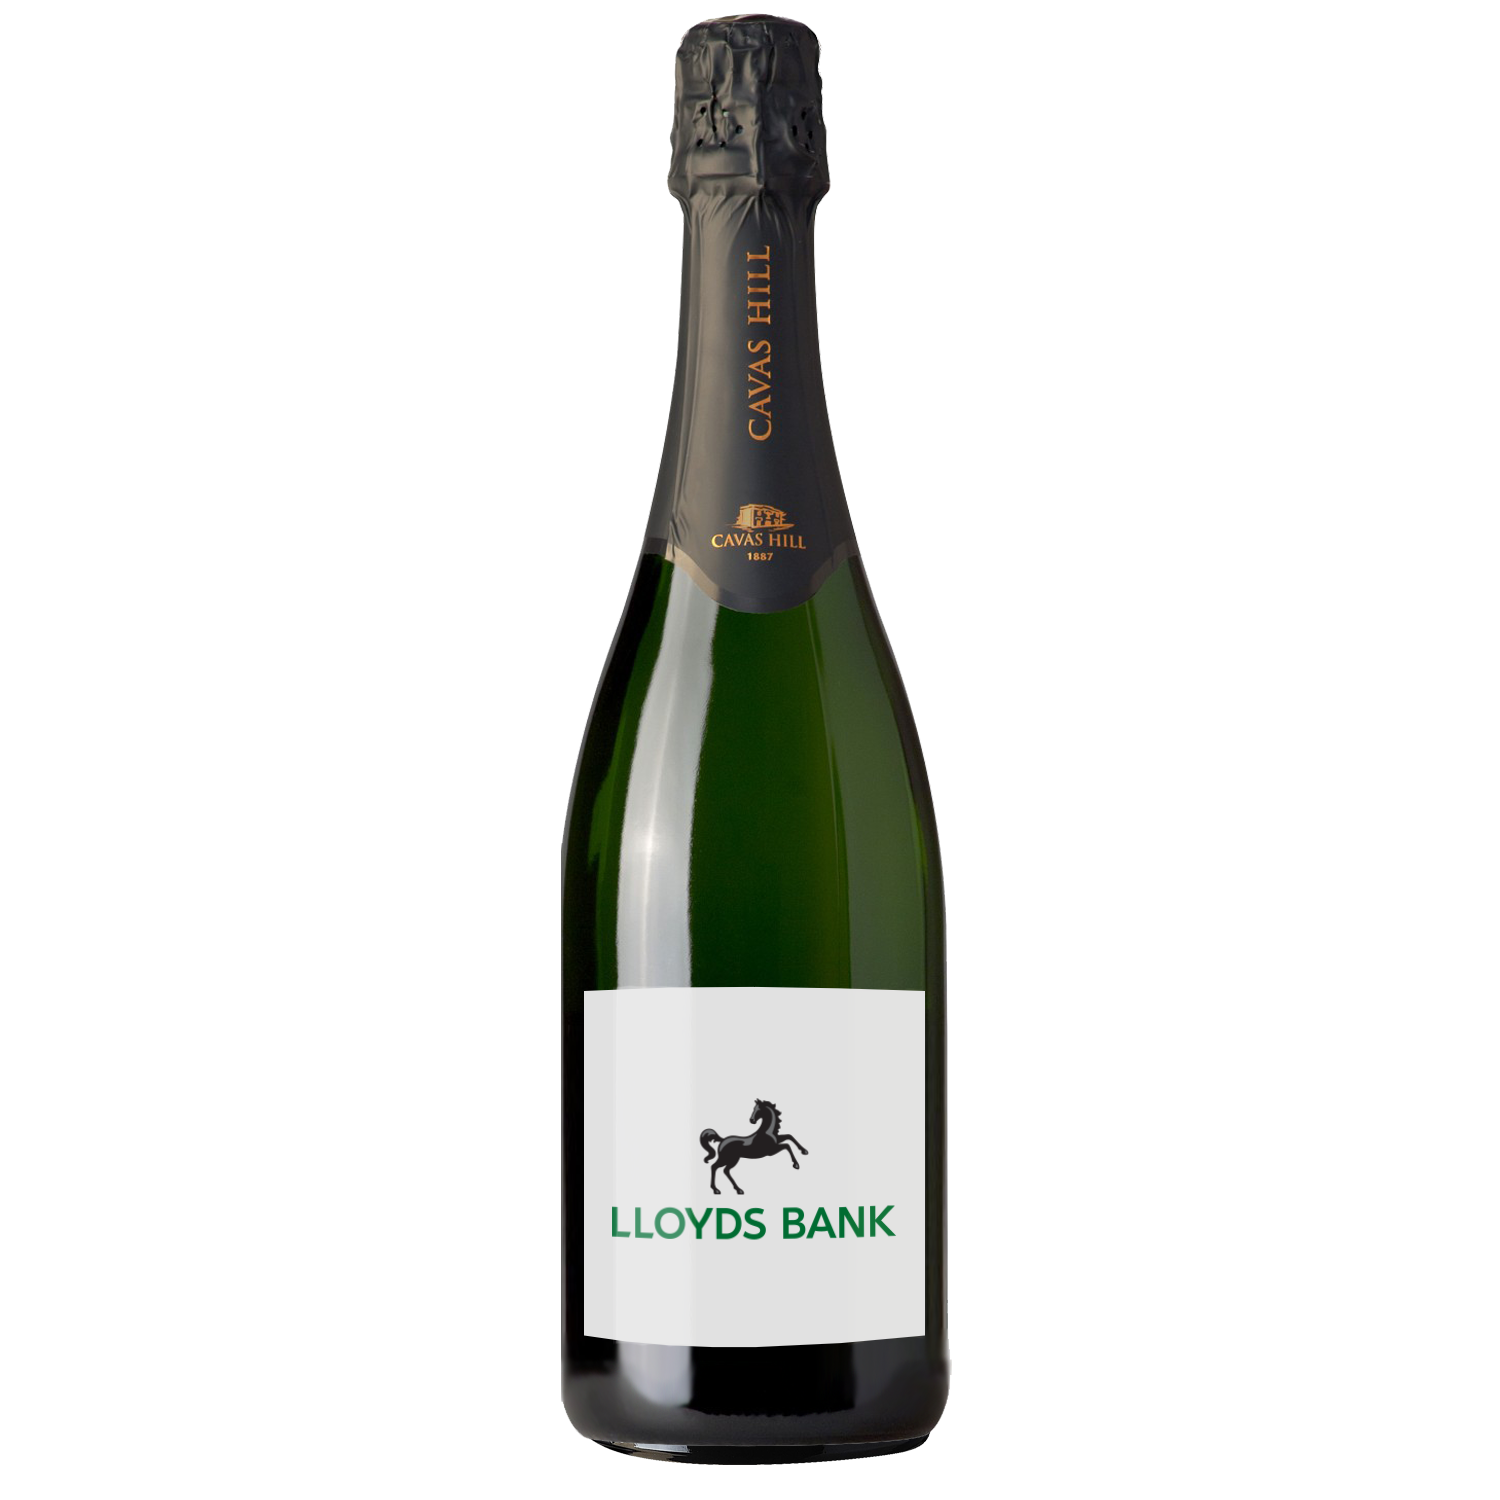 Branded Cavas Hill Brut Cava, Award Winning Personalised Wine